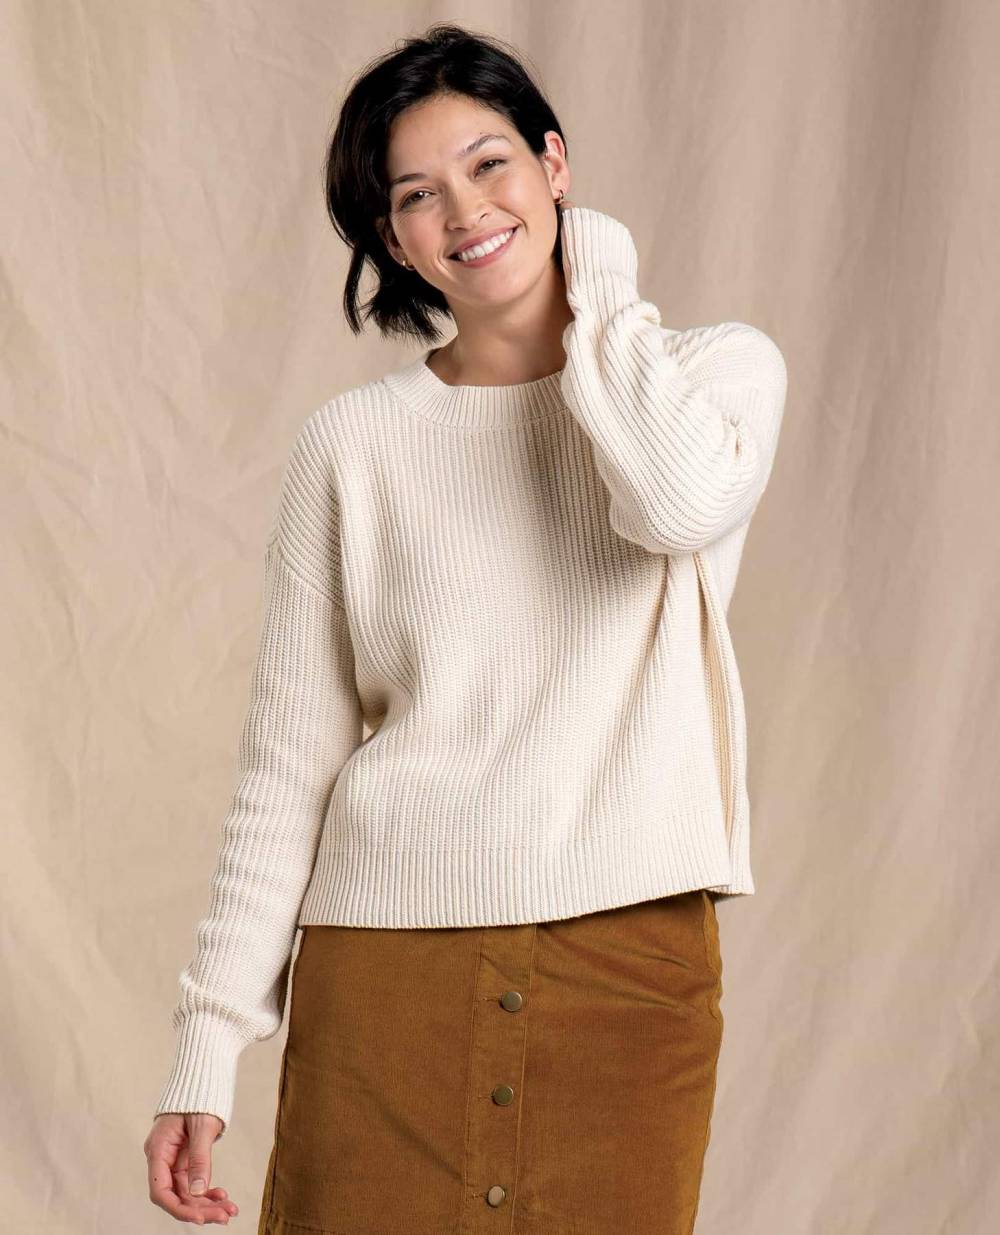 toadandco sustainable affordable sweater